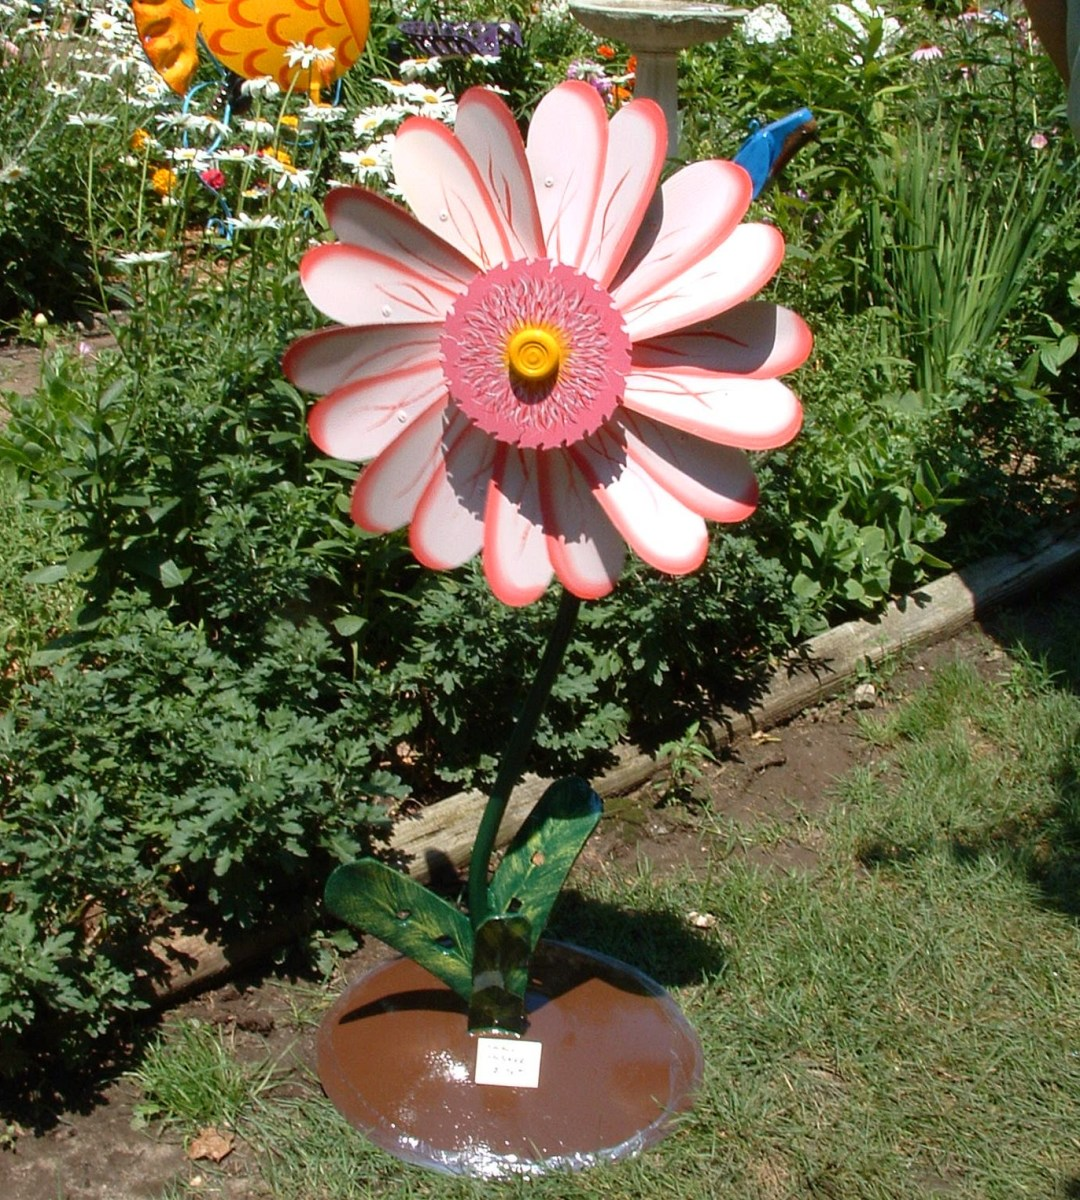 Whimsical spinner flower made out of recycled bicycle wheel. It spins like a pinwheel when the wind blows.